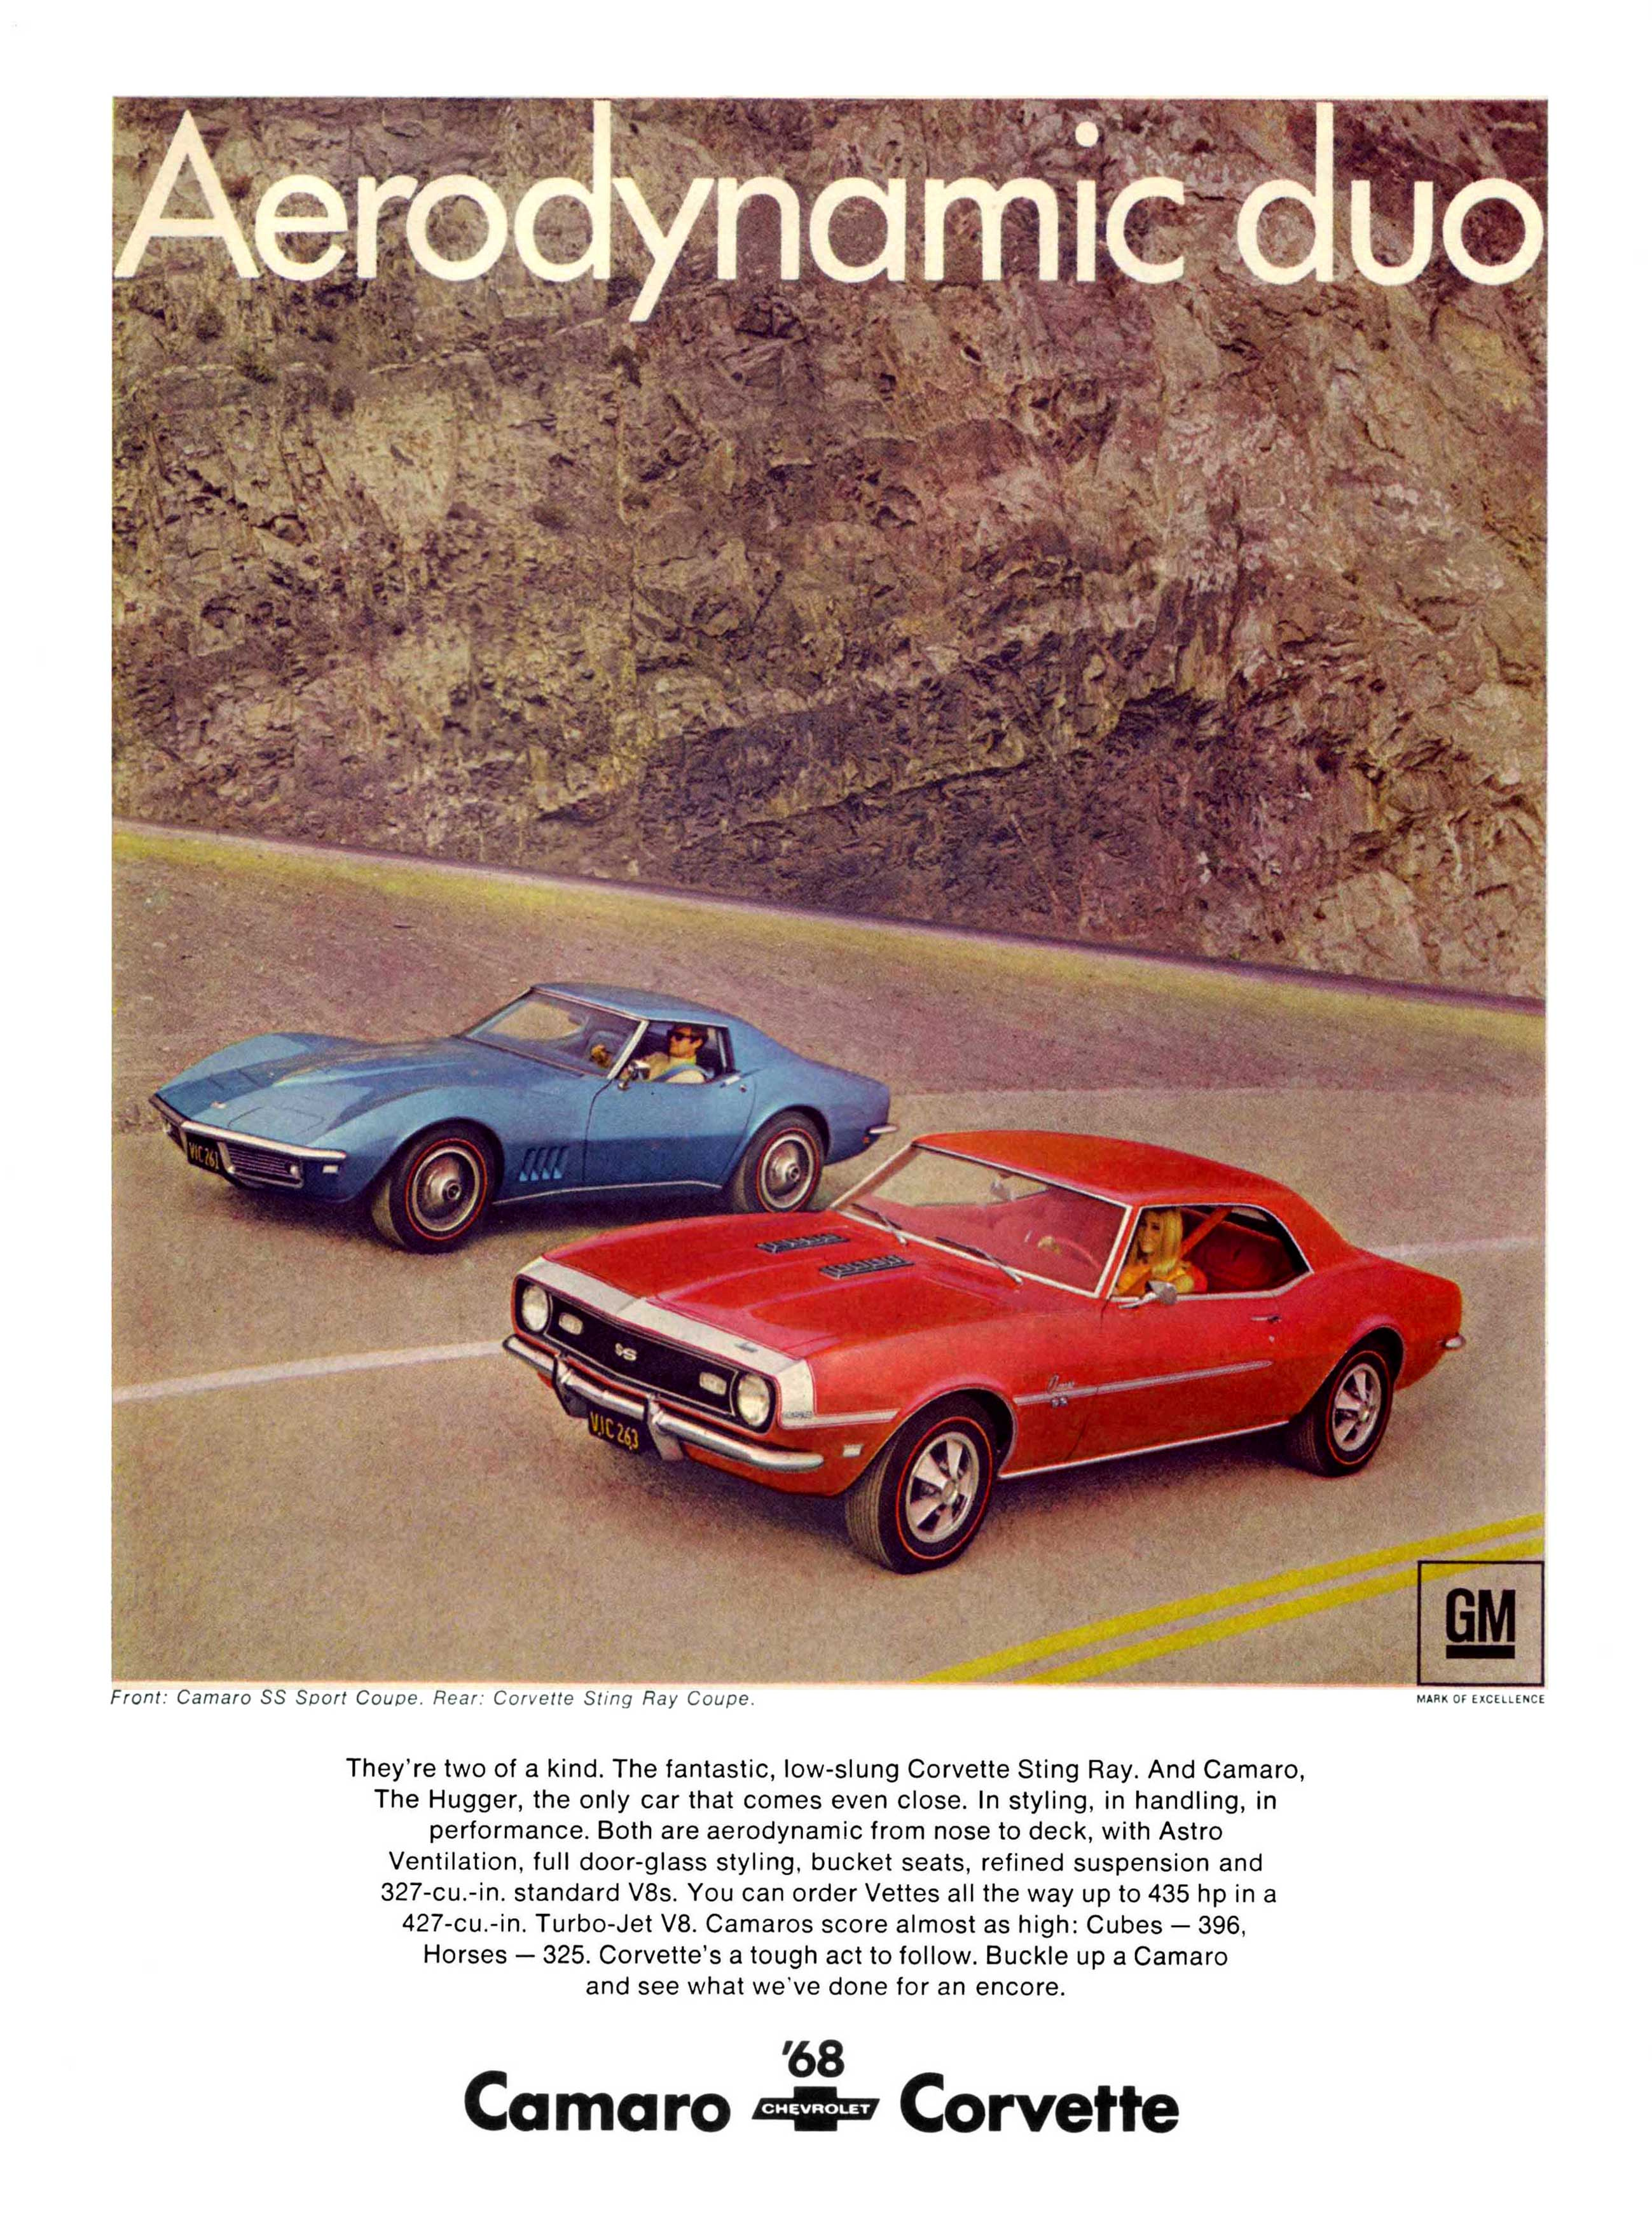 Coolest Chevrolet Camaro Ads of the 1960s! | Chevys Only